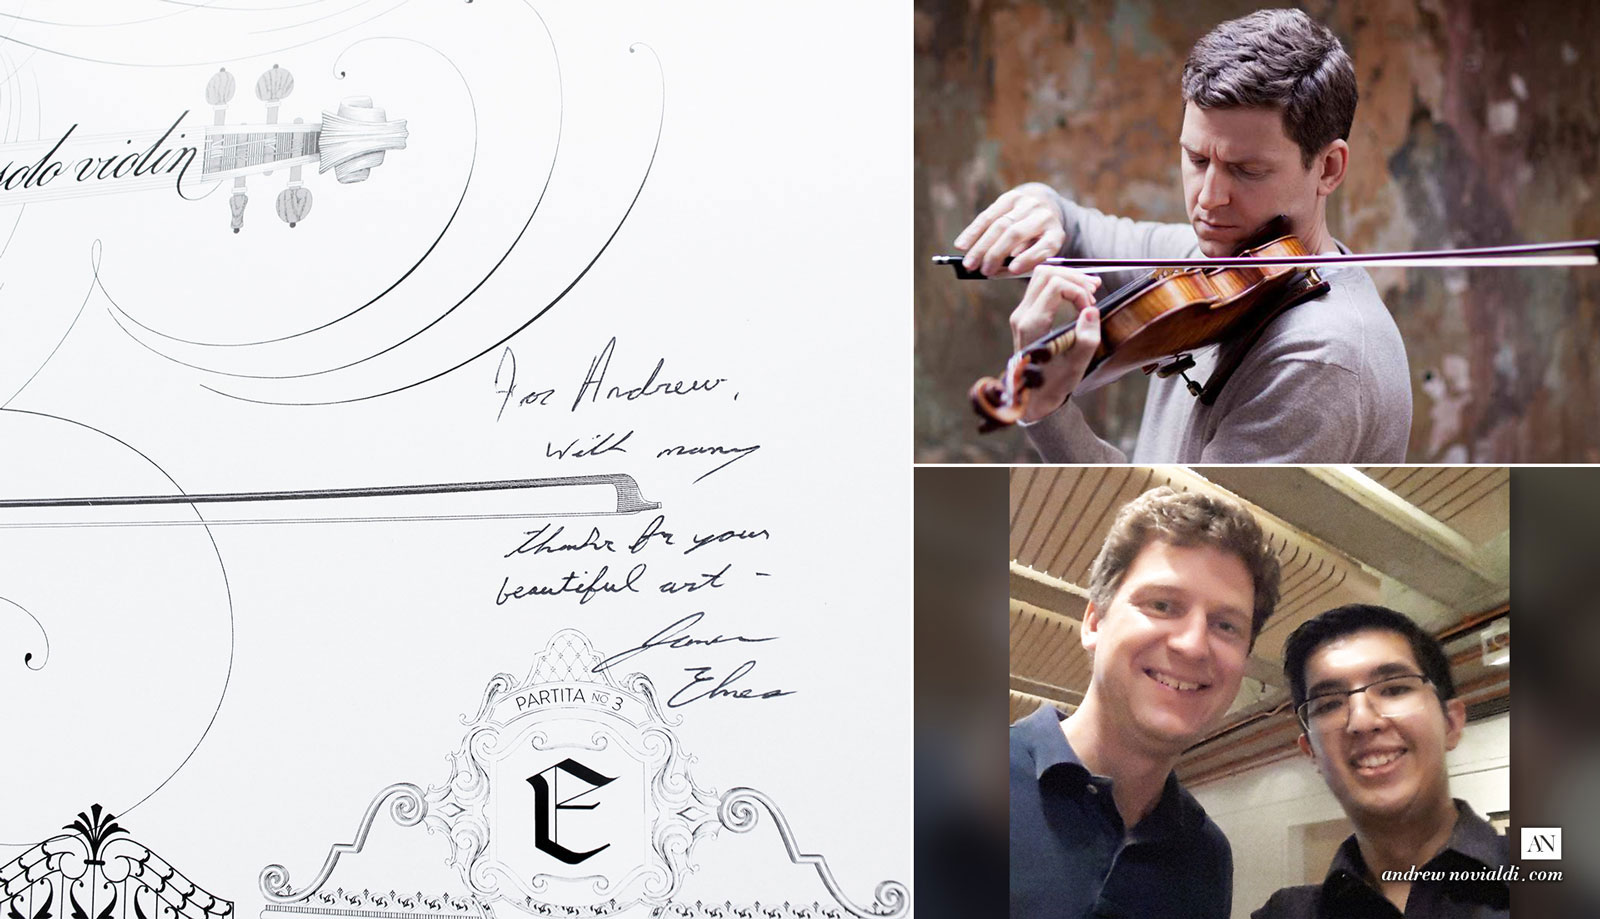 Bach Sonatas and Partitas for Solo Violin Dedicated to James Ehnes. Signature of James. With Andrew Novialdi.